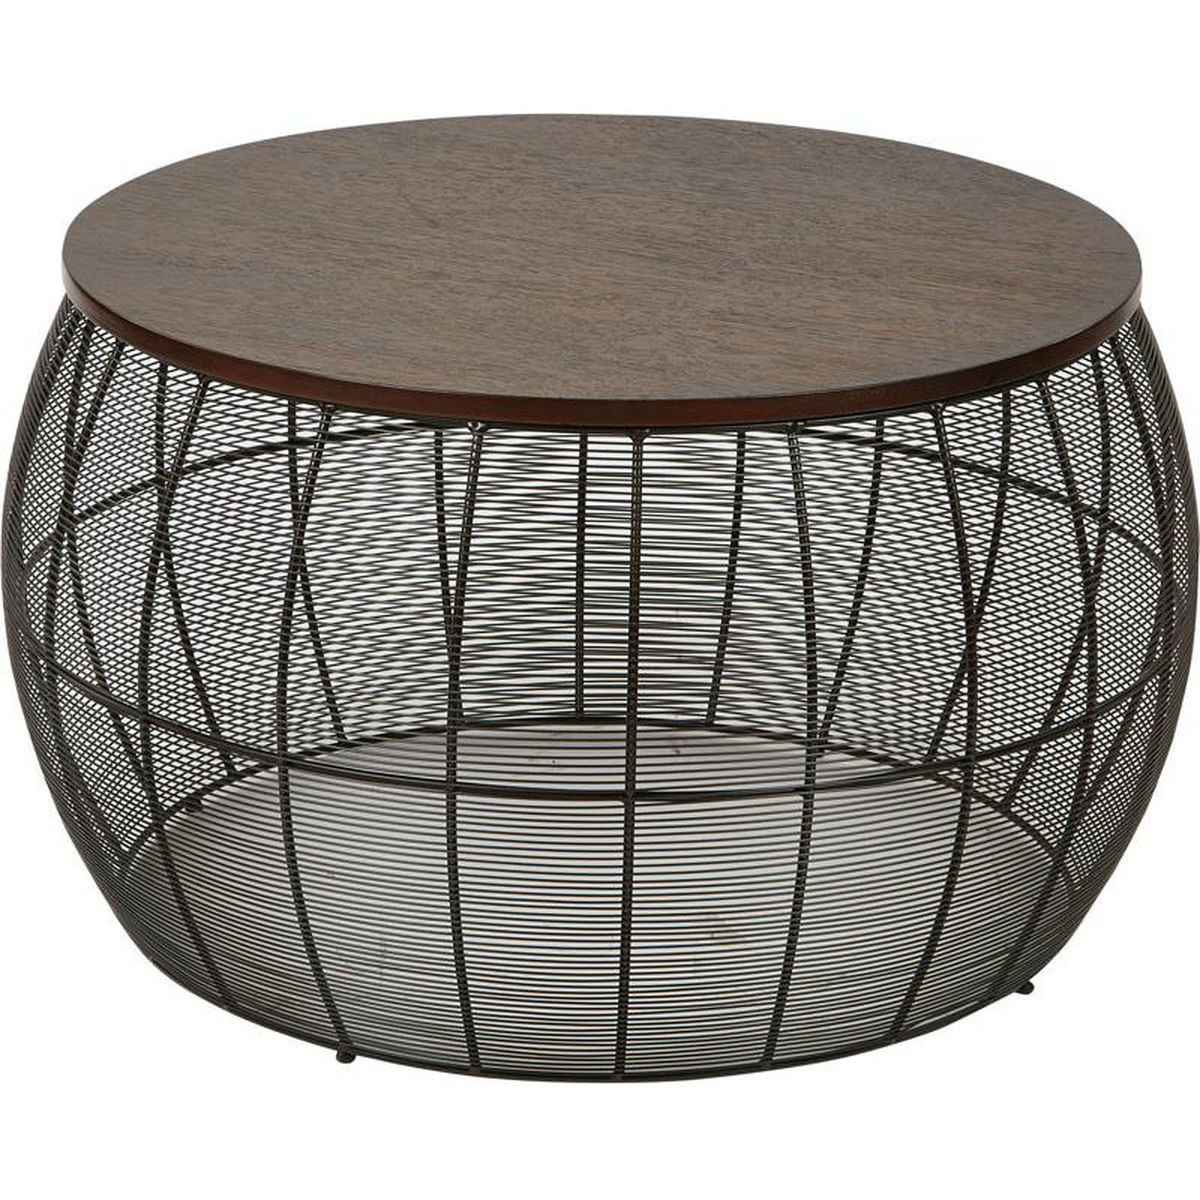 camden piece round accent tables bizchair office star products unique small our osp designs metal with wood top espresso outdoor wicker dining table floor lamp shelf attached